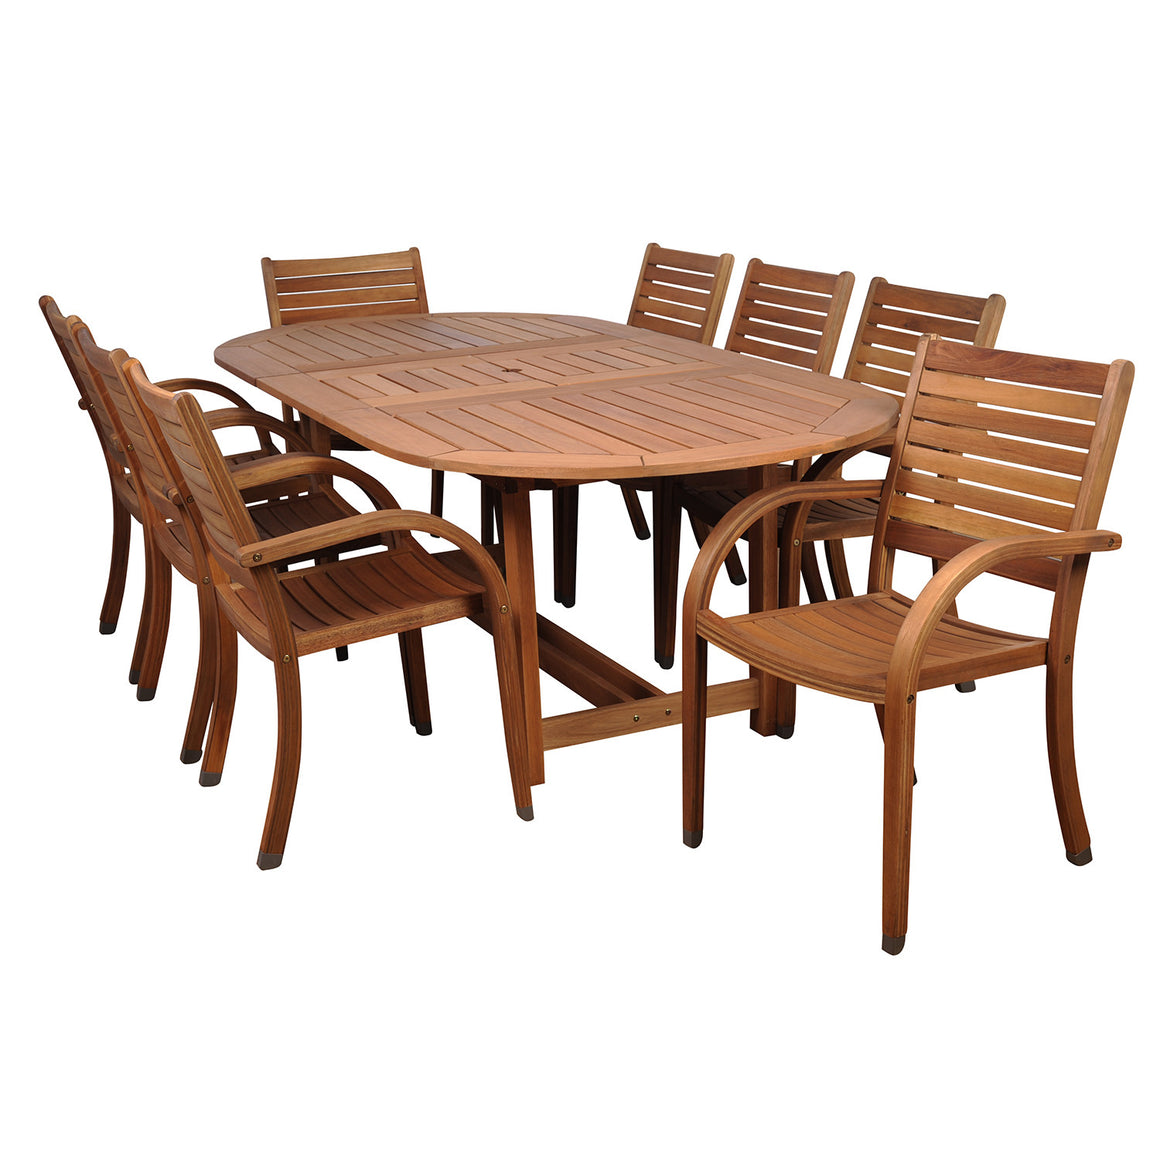 Arizona 9 Piece Eucalyptus Extendable Oval Patio Dining Set , International Home Miami- grayburd